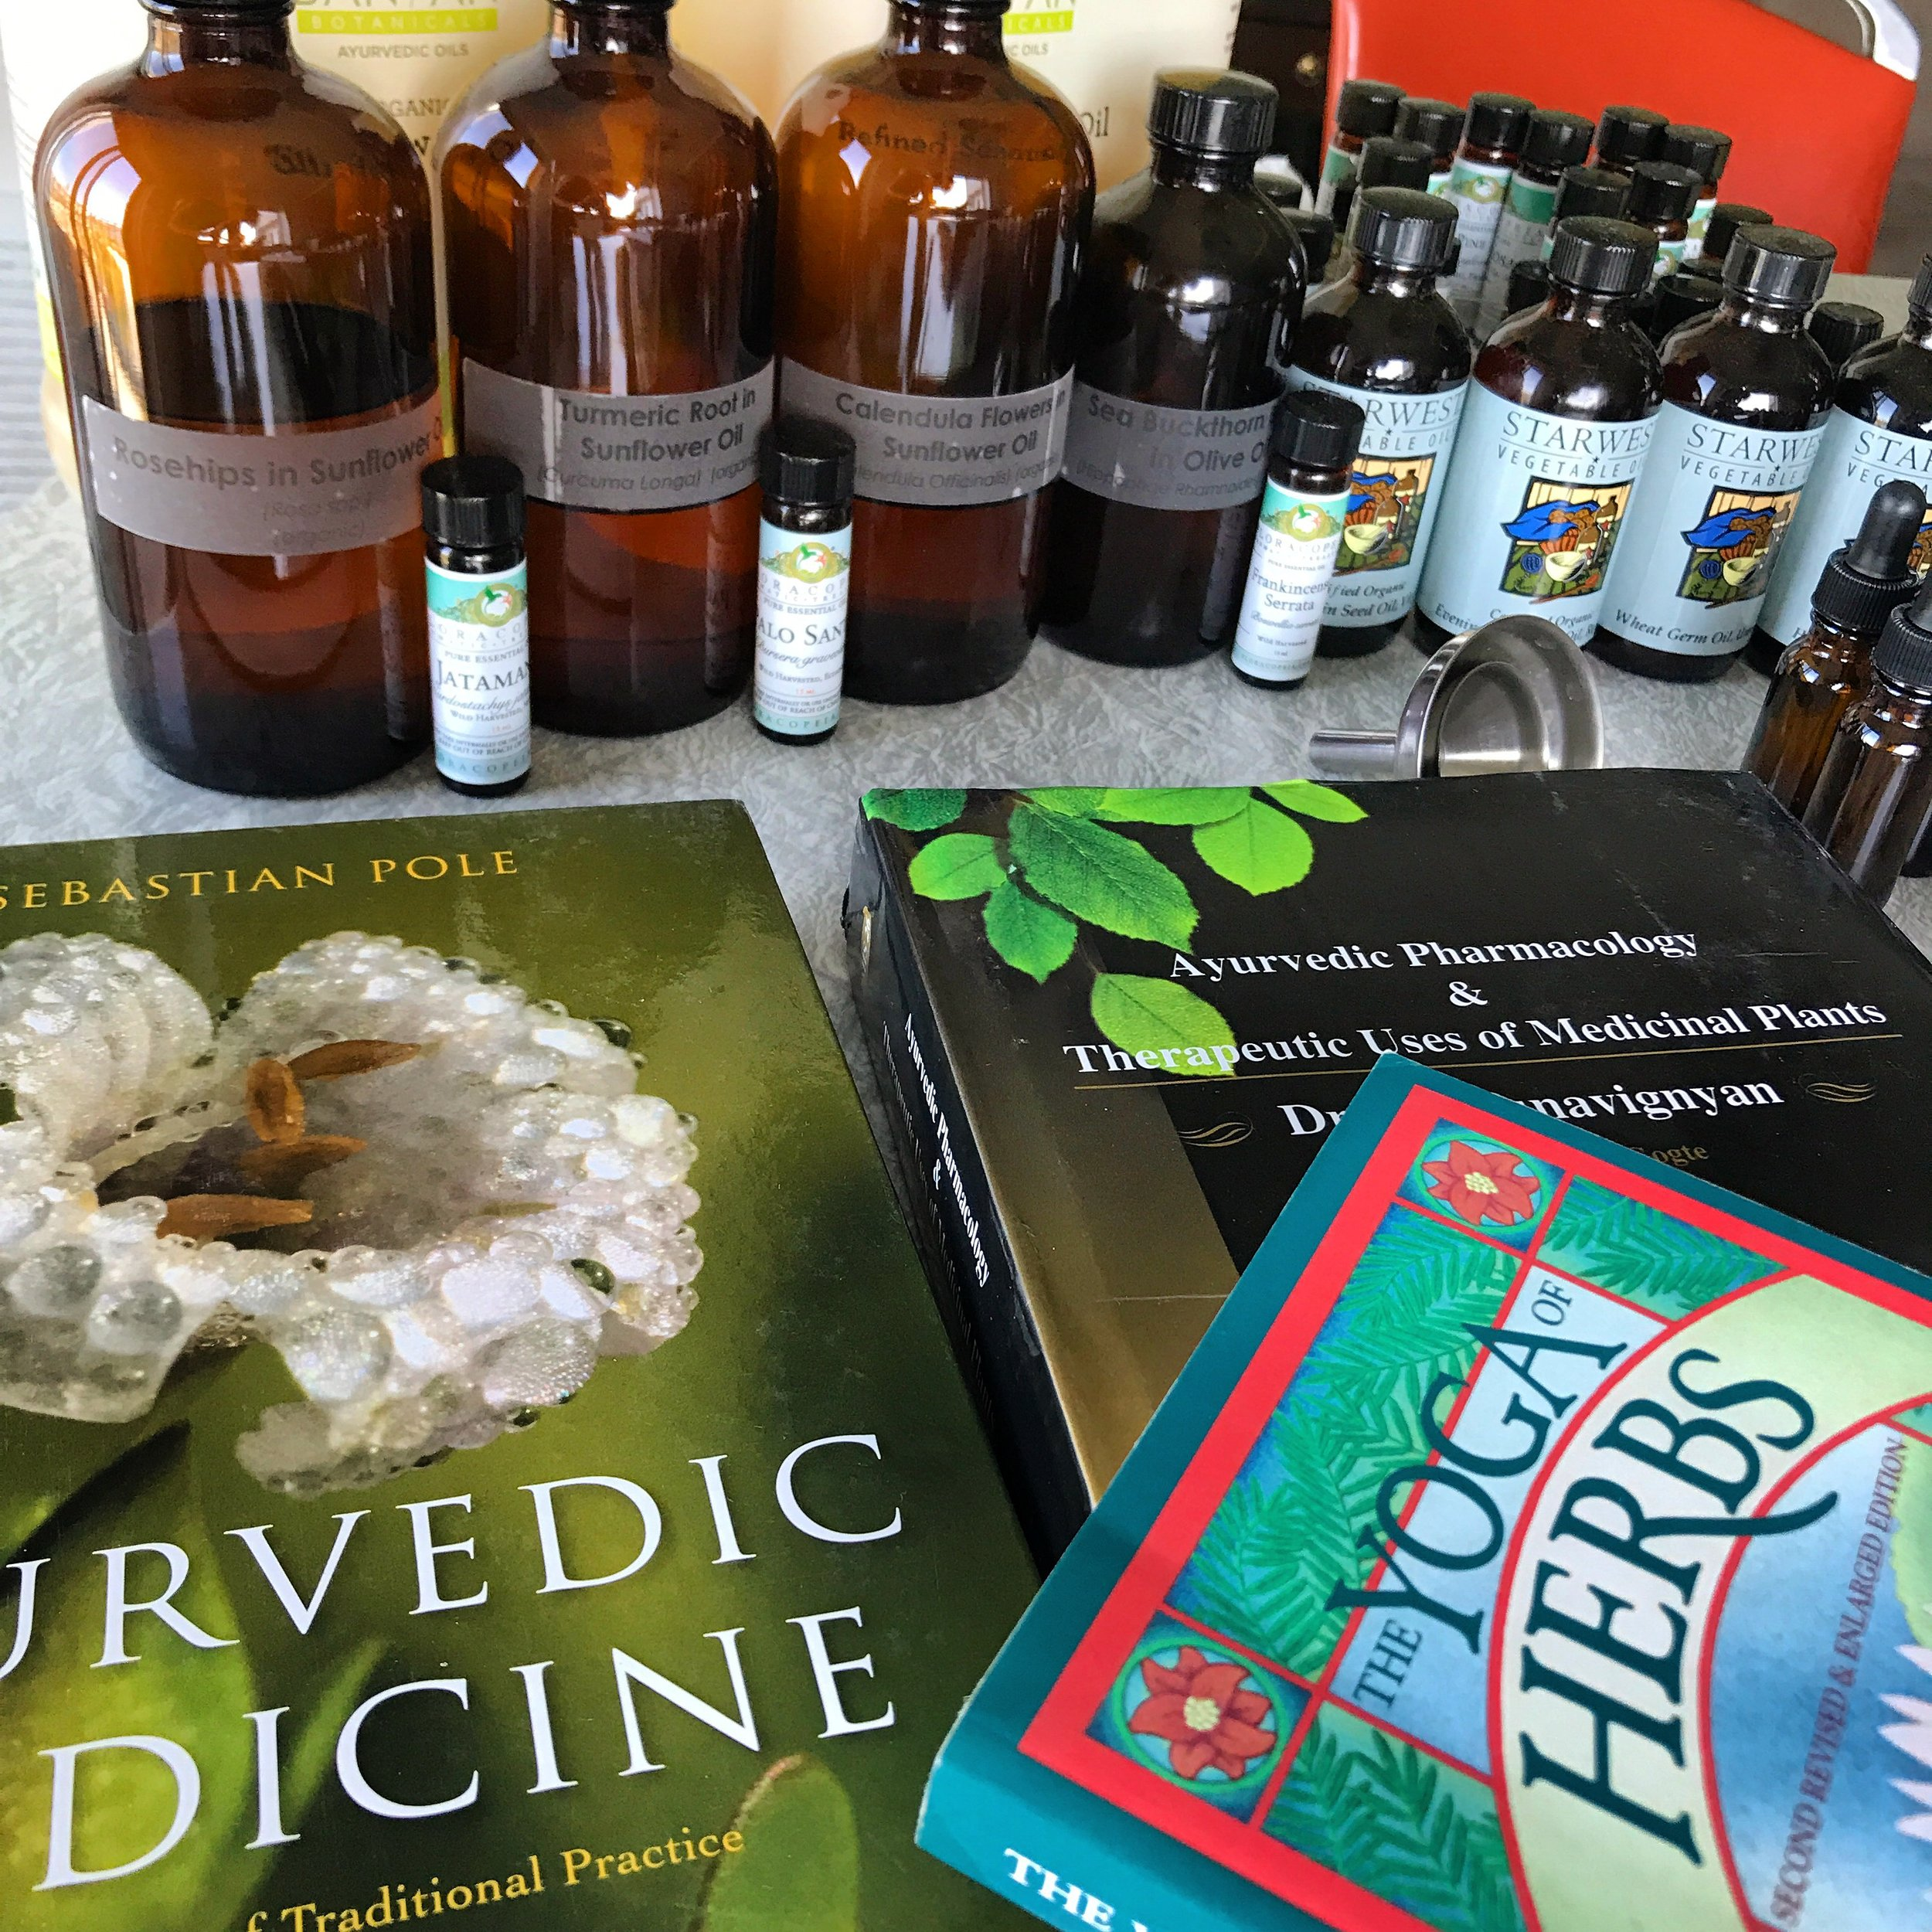 Five-Prana_Ayurvedic-Herbs-List_Books.JPG